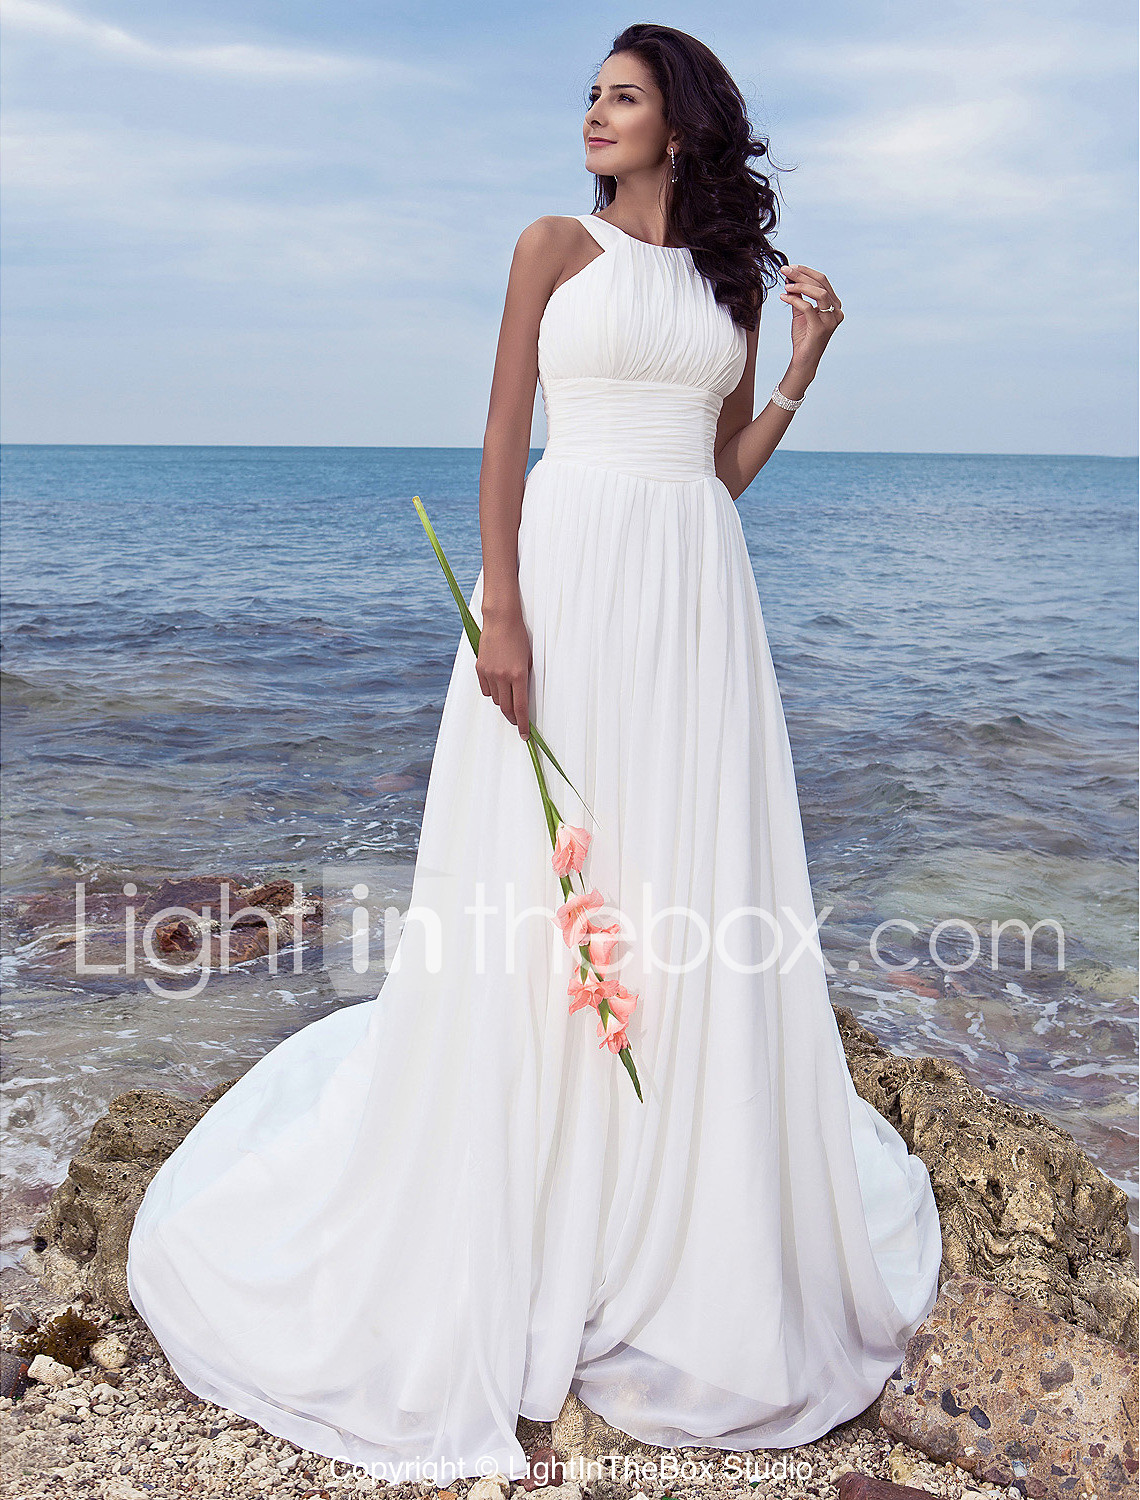 wedding dresses clearance wedding dresses LAN TING BRIDE A line Wedding Dress Classic Timeless Chic Modern Simply